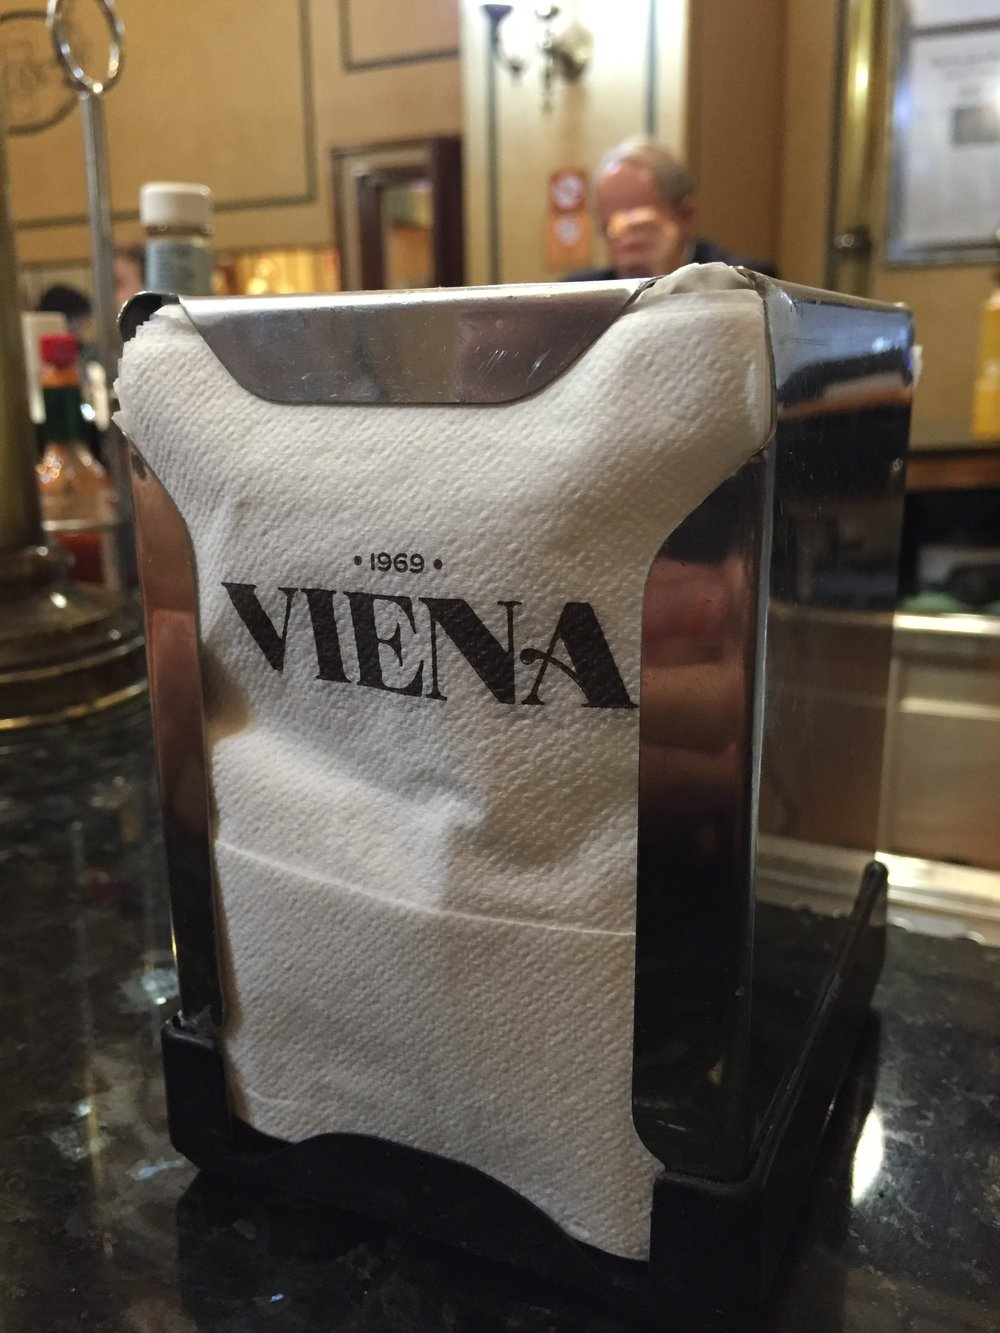 You get the idea of what Viena is like.